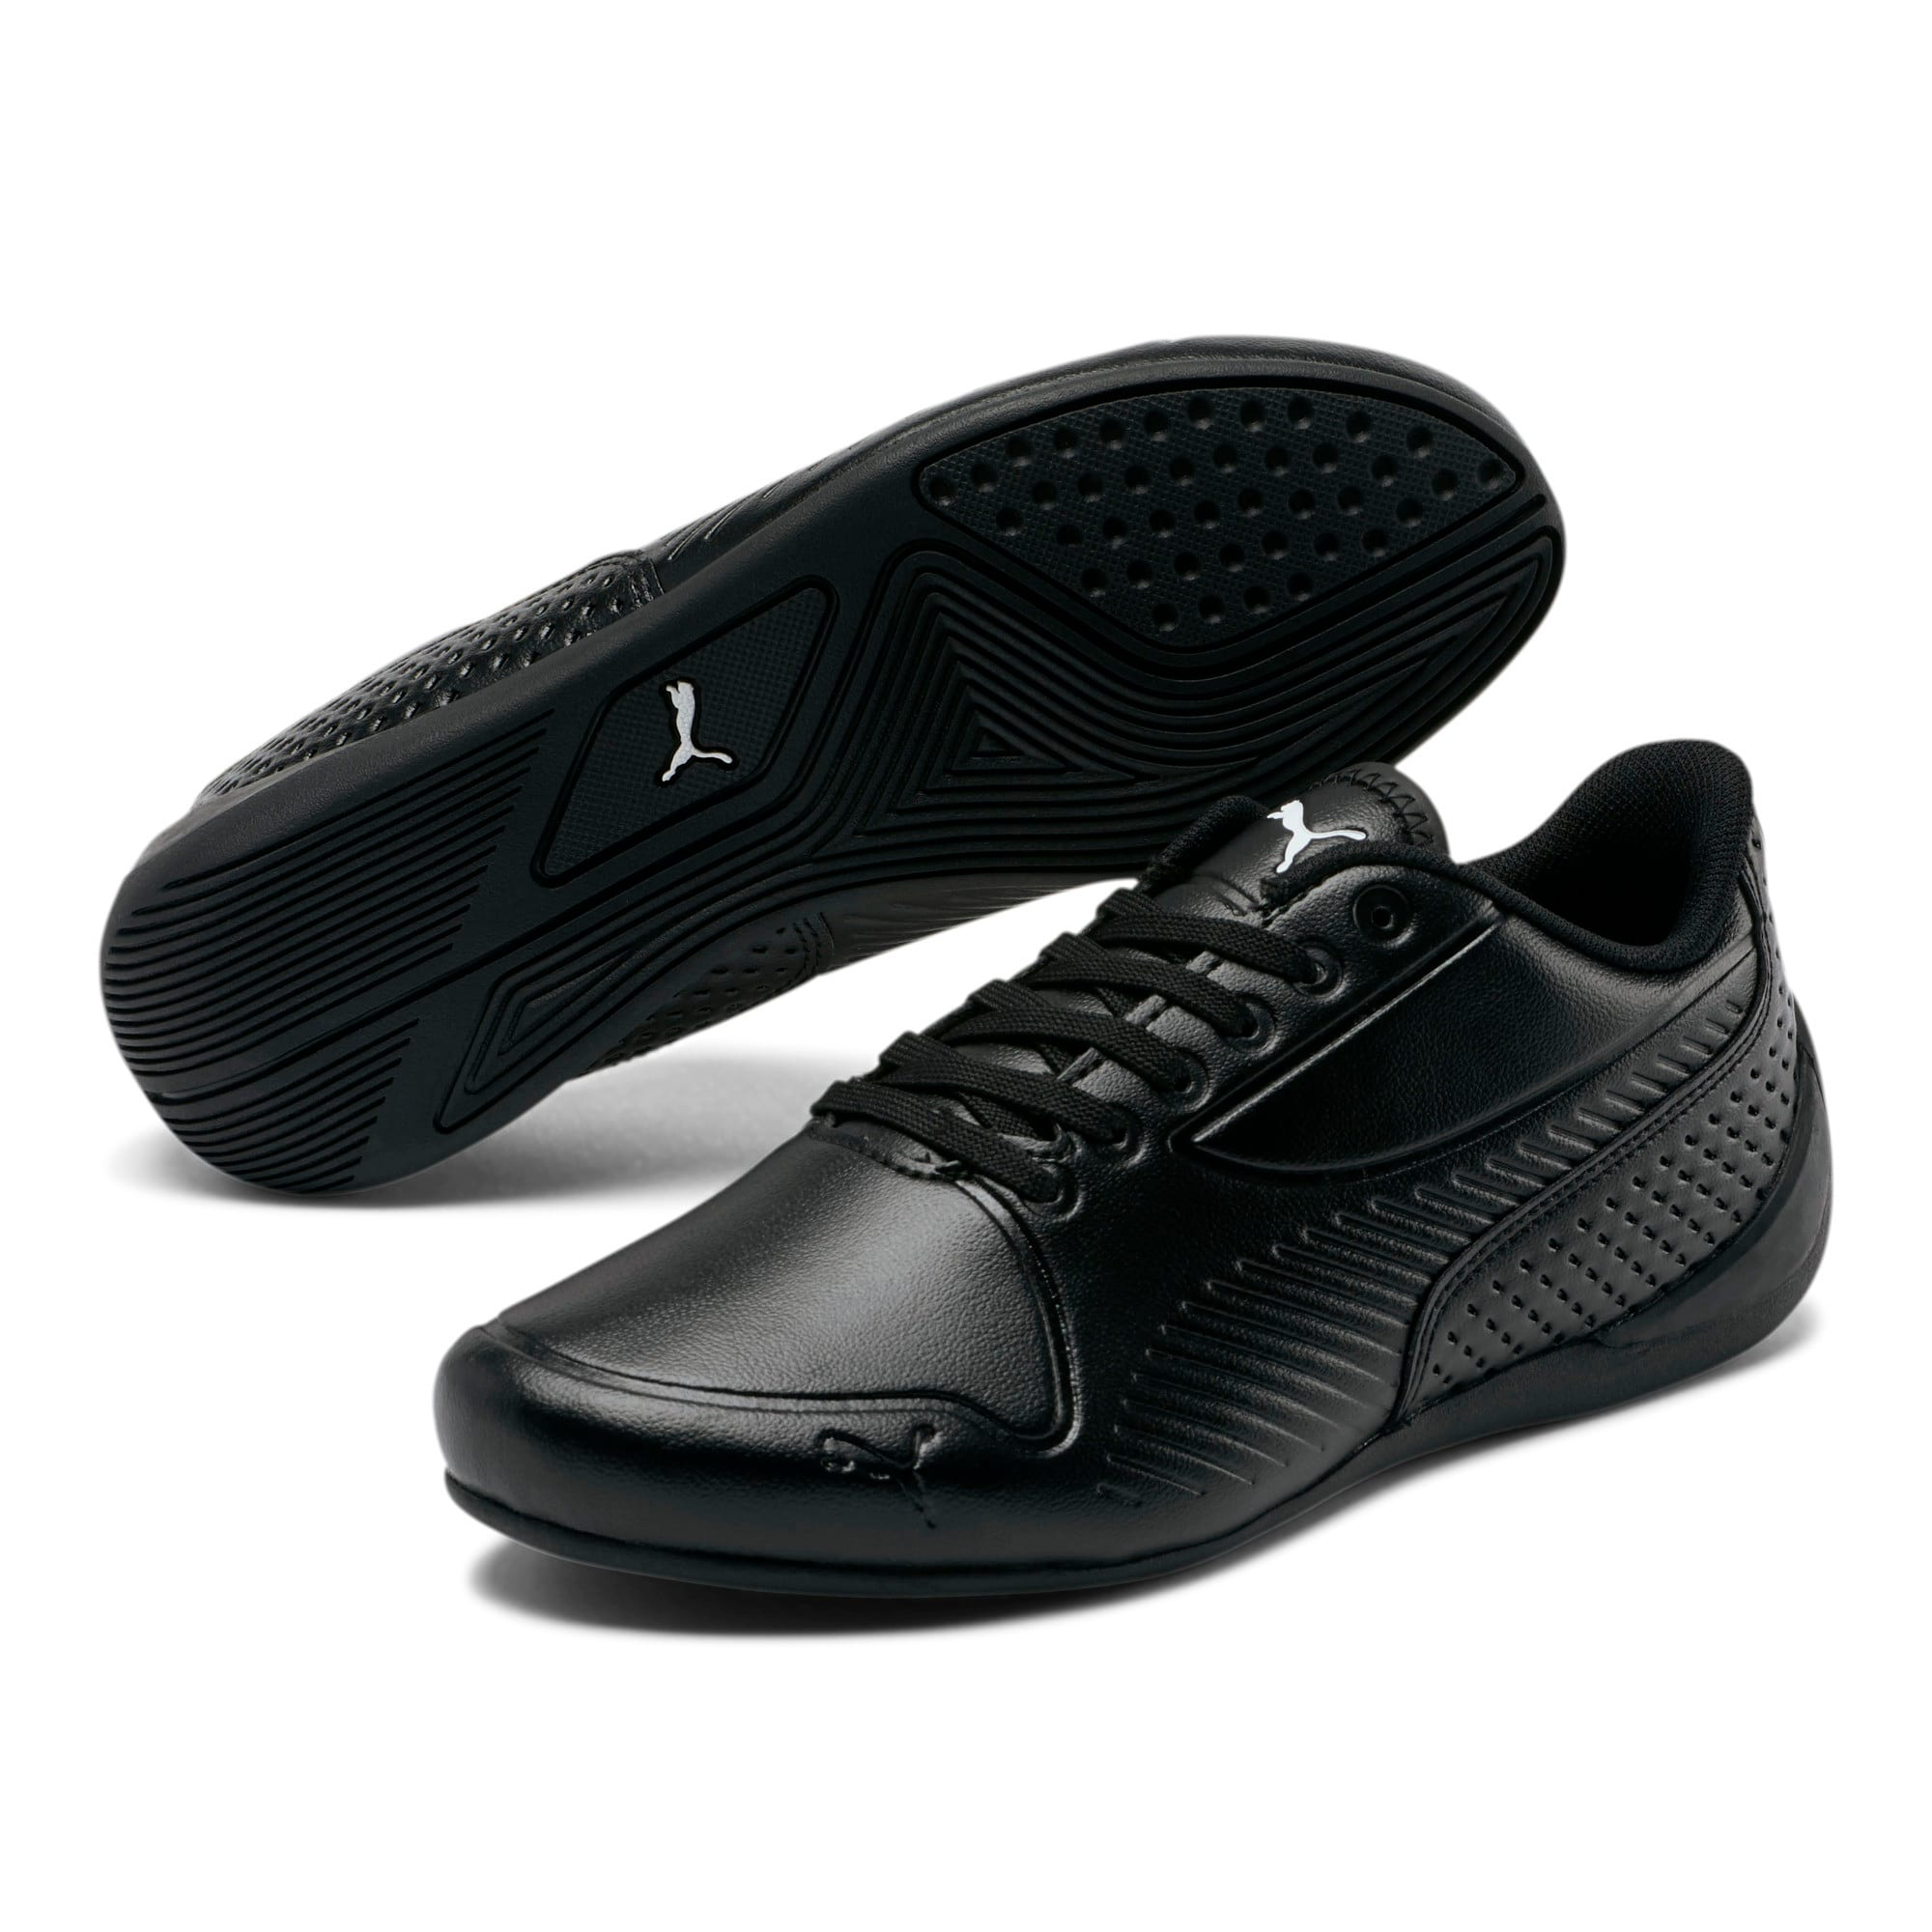 Thumbnail 2 of Drift Cat 7S Ultra Shoes JR, Puma Black-Puma Black, medium